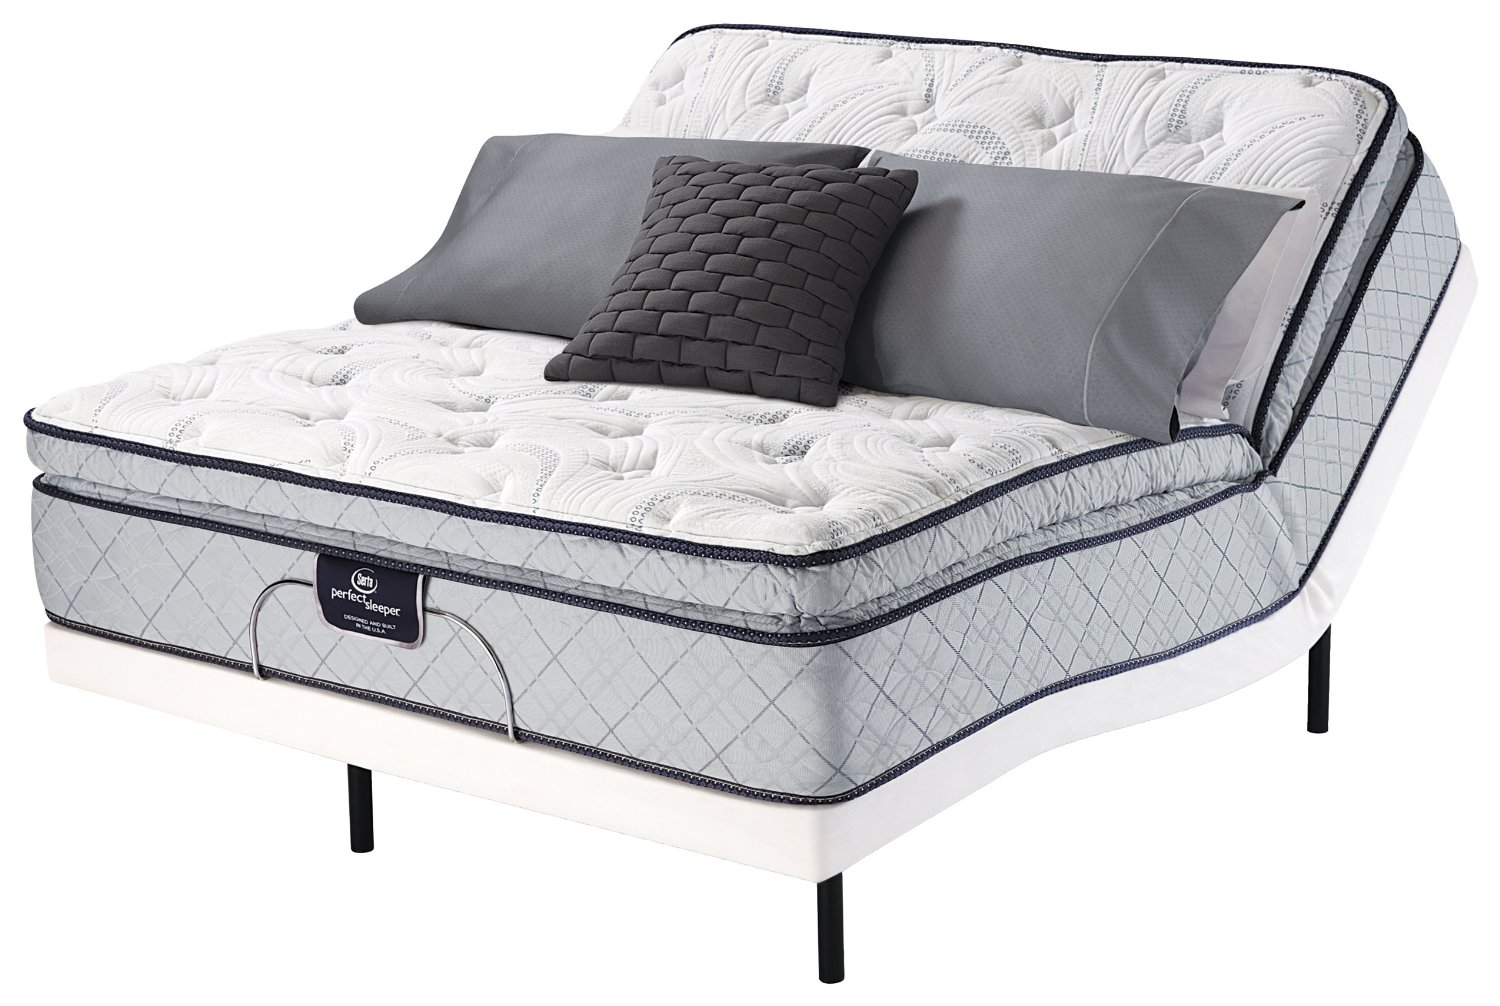 Serta Mattress Uk Top 10 Best Serta Mattress Reviews 2019 Choice